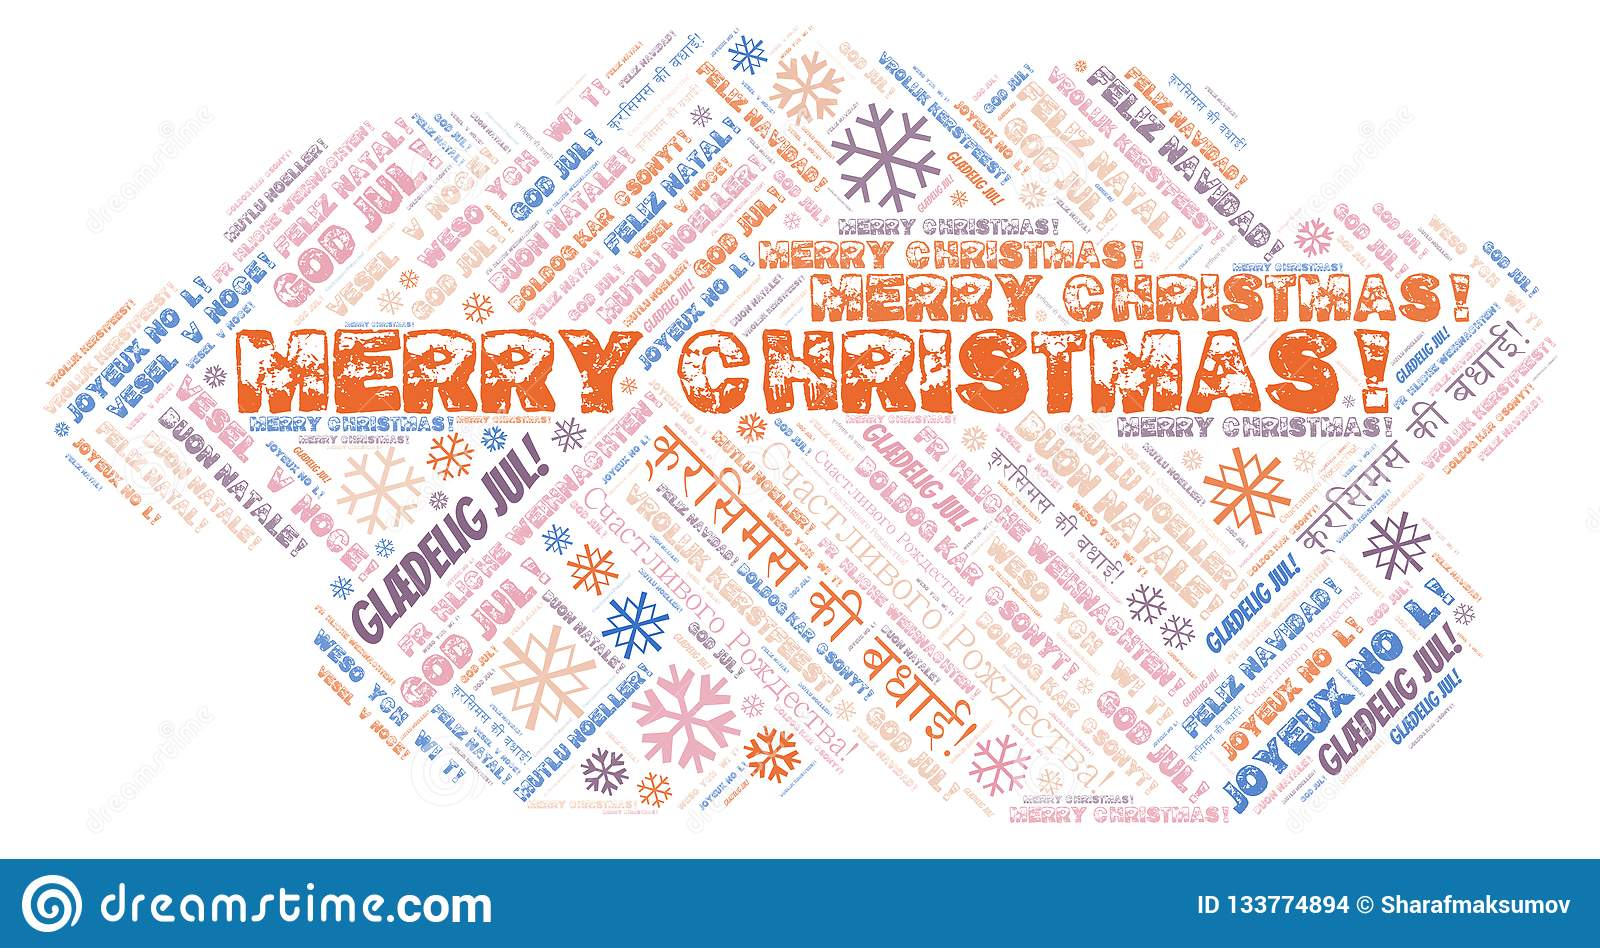 Merry Christmas word cloud - Merry Christmas on English language and other different languages